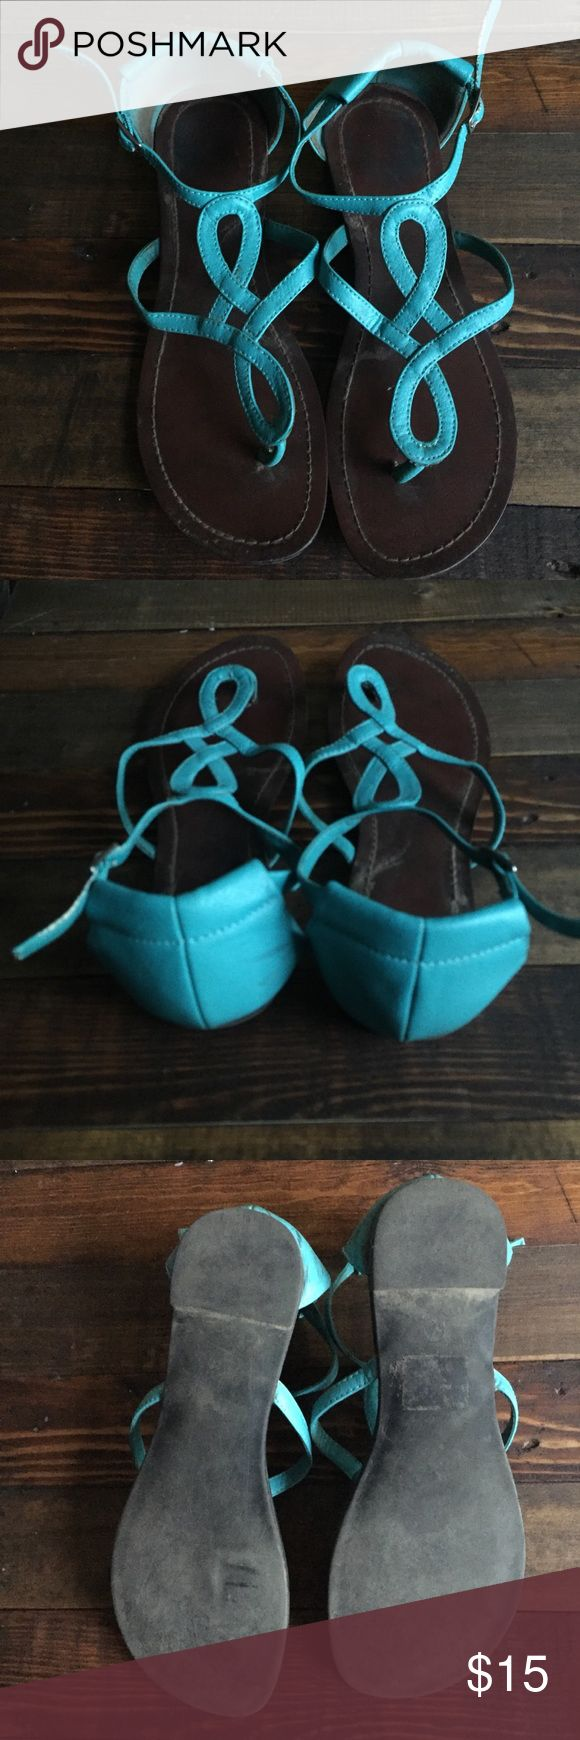 Old navy sandals Teal sandals from old navy. Definitely been worn, but lots of life left in them :) size 6.5 Old Navy Shoes Sandals